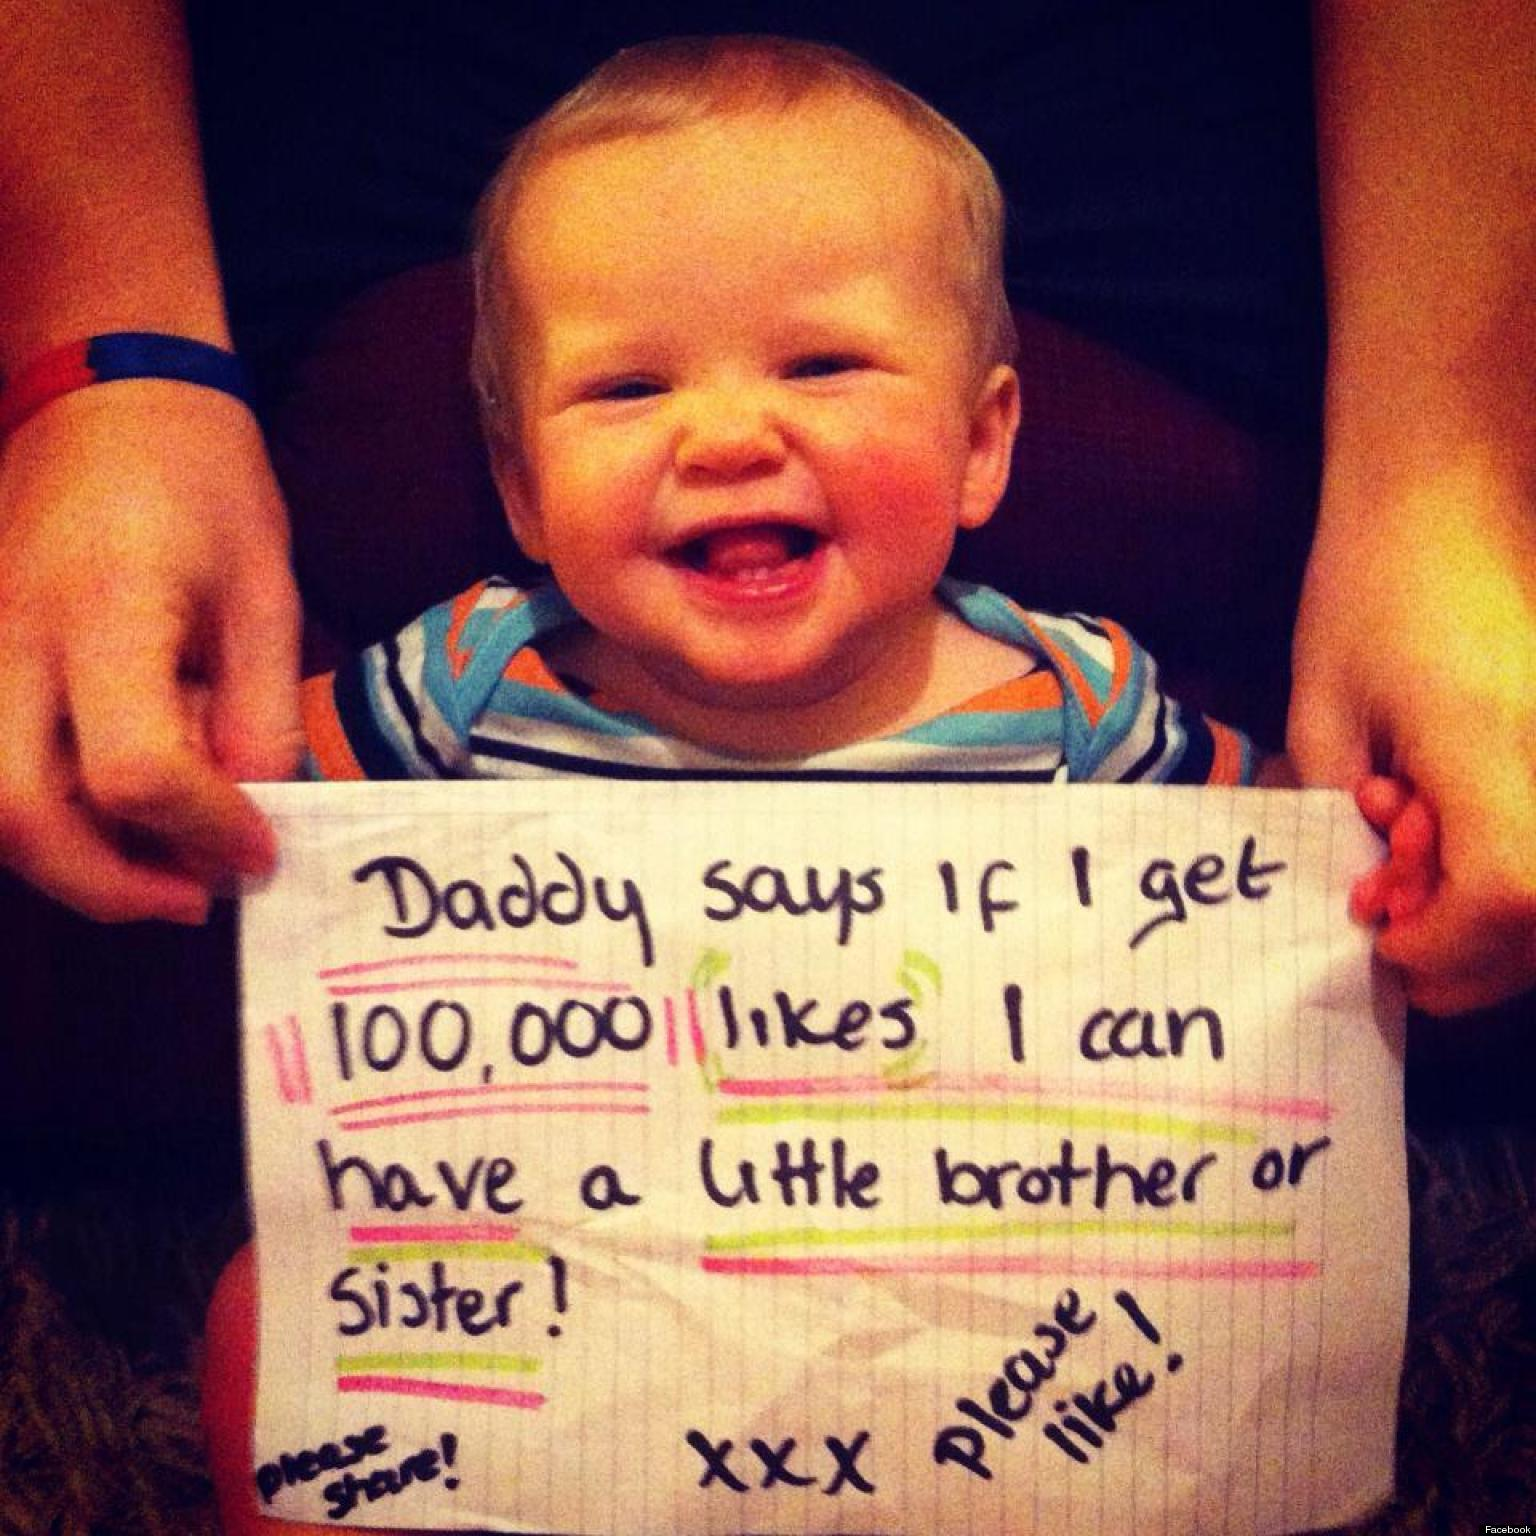 How Many Facebook Likes Does It Take To Get A Baby Brother?